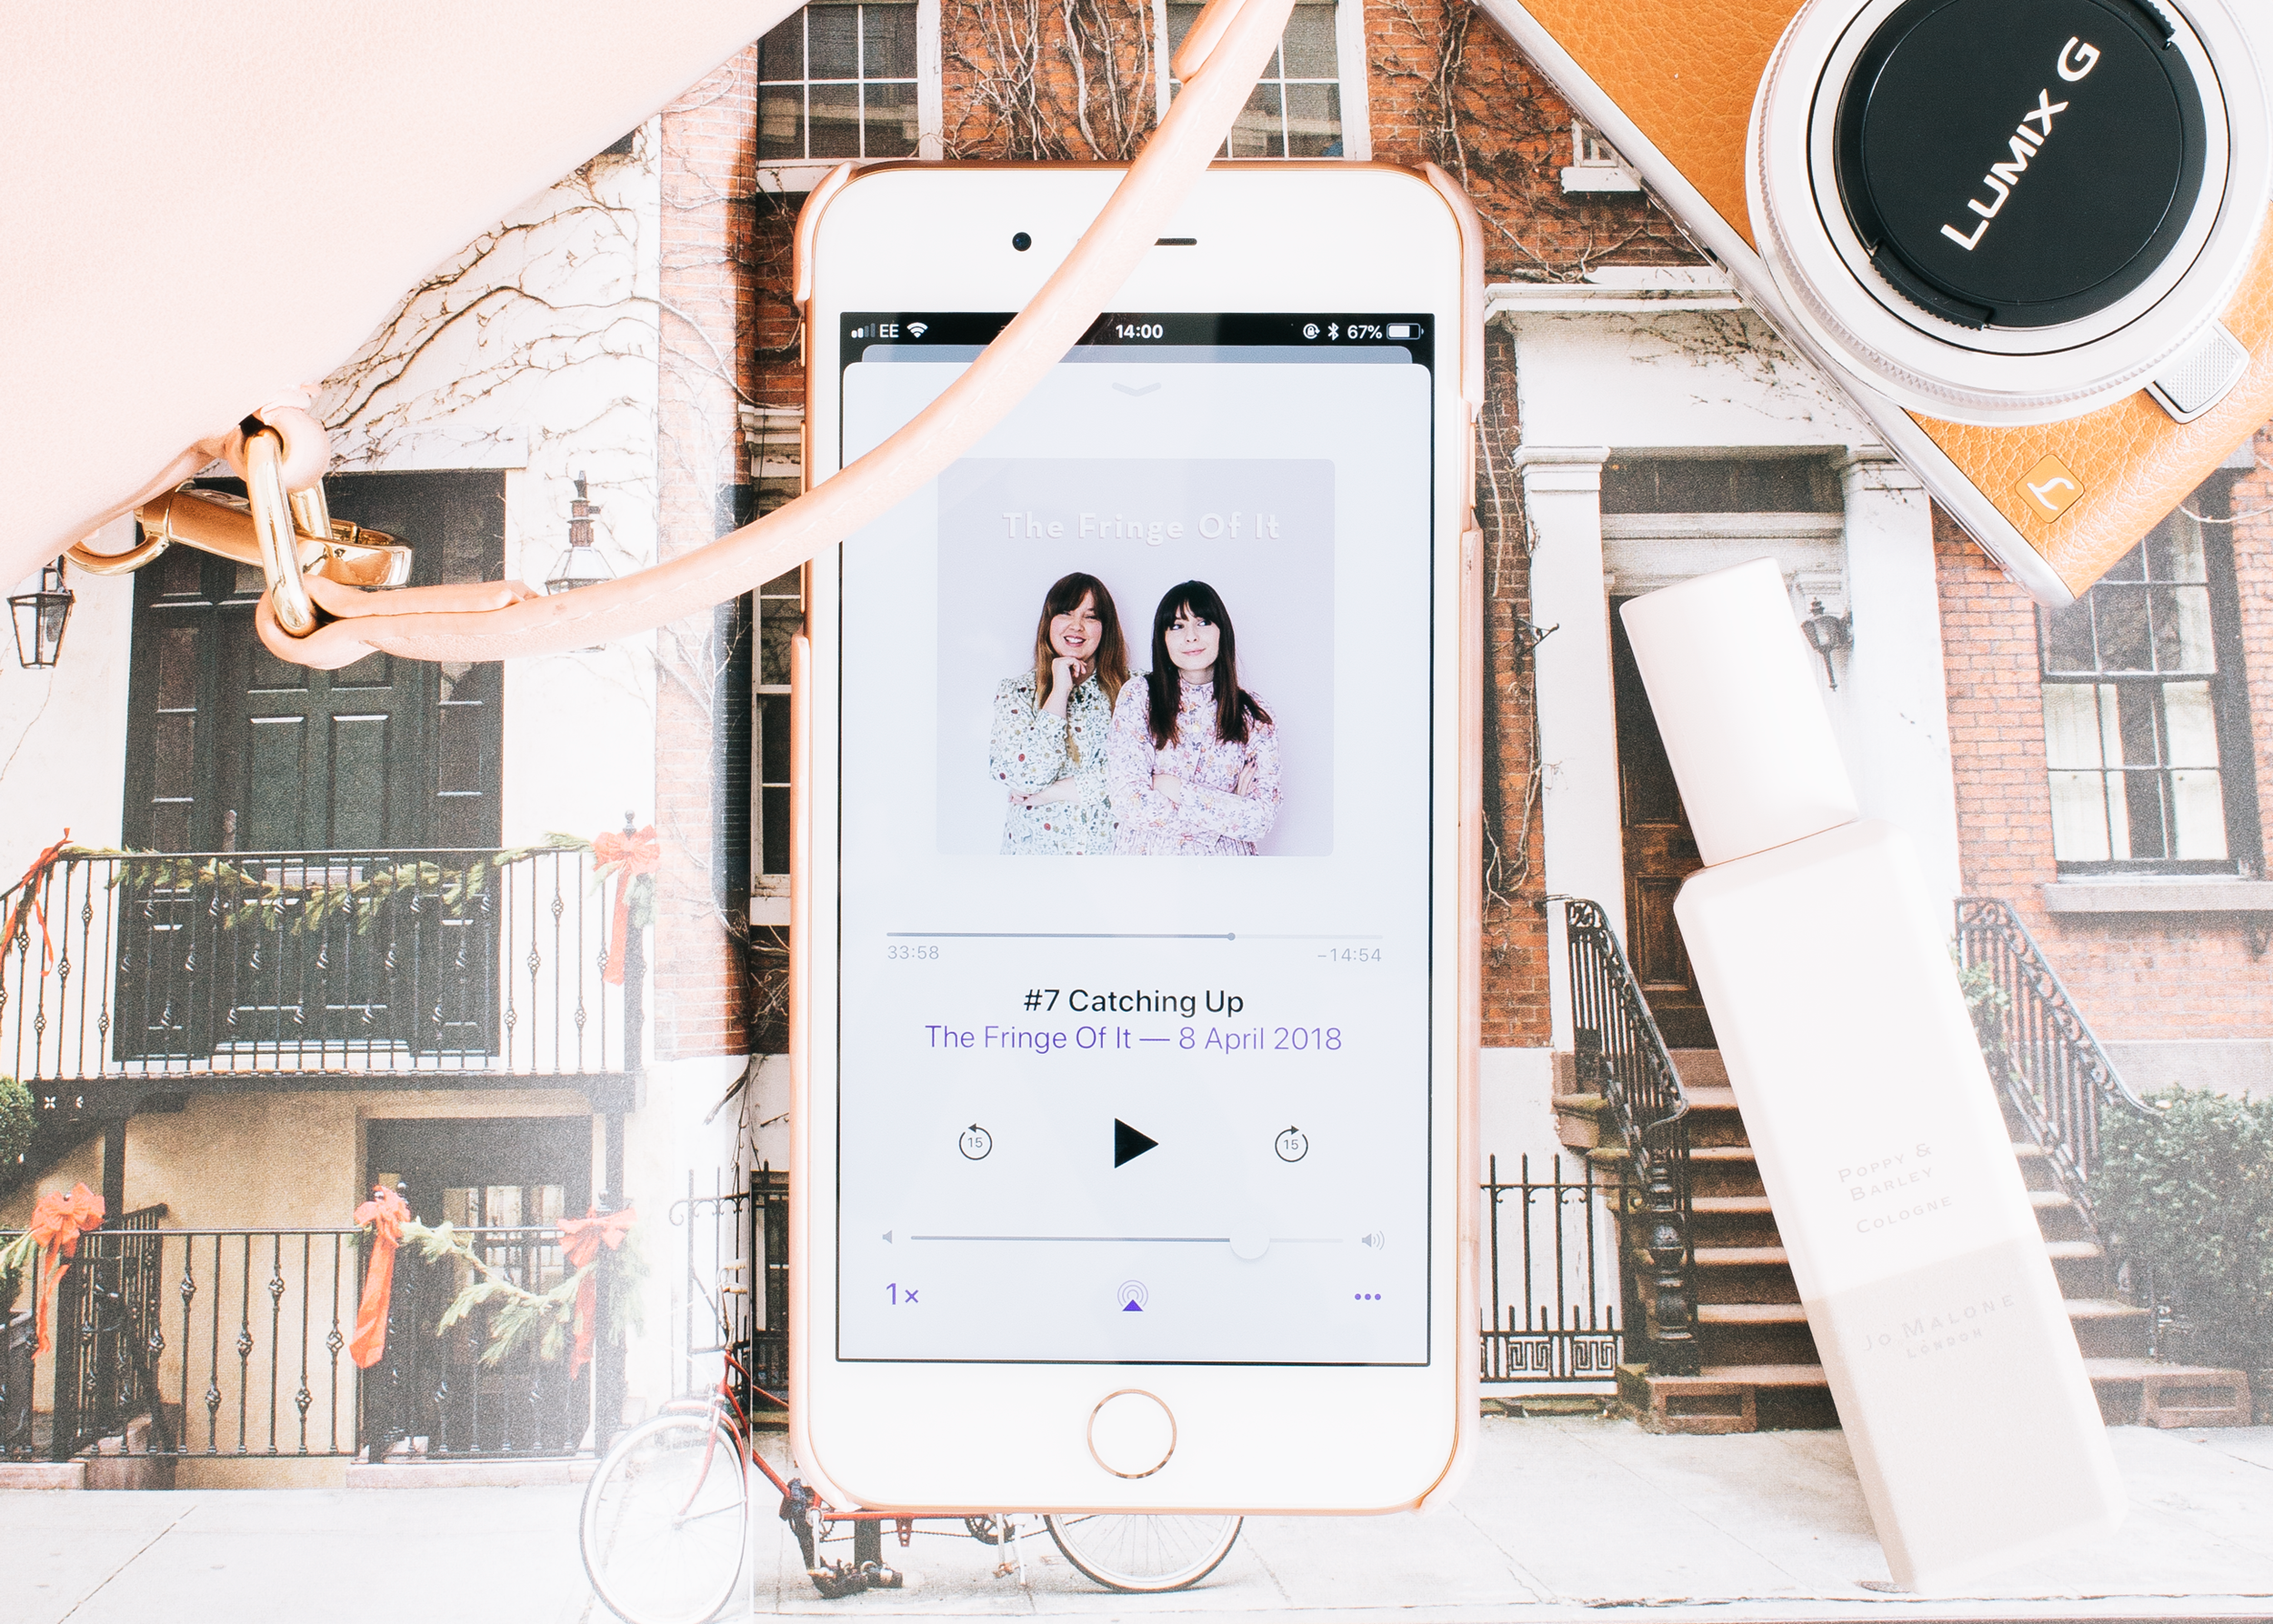 3 podcasts I think you'll love - Forgive me for sharing my own post but I just had to give these podcasts another mention as they've been bringing me such joy lately. The topics spoken about in these podcasts are what I'm really drawn to at the moment, especially The Fringe Of It. It almost feels like Charlotte and Liv are living inside my brain, plucking out my thoughts and then discussing them.